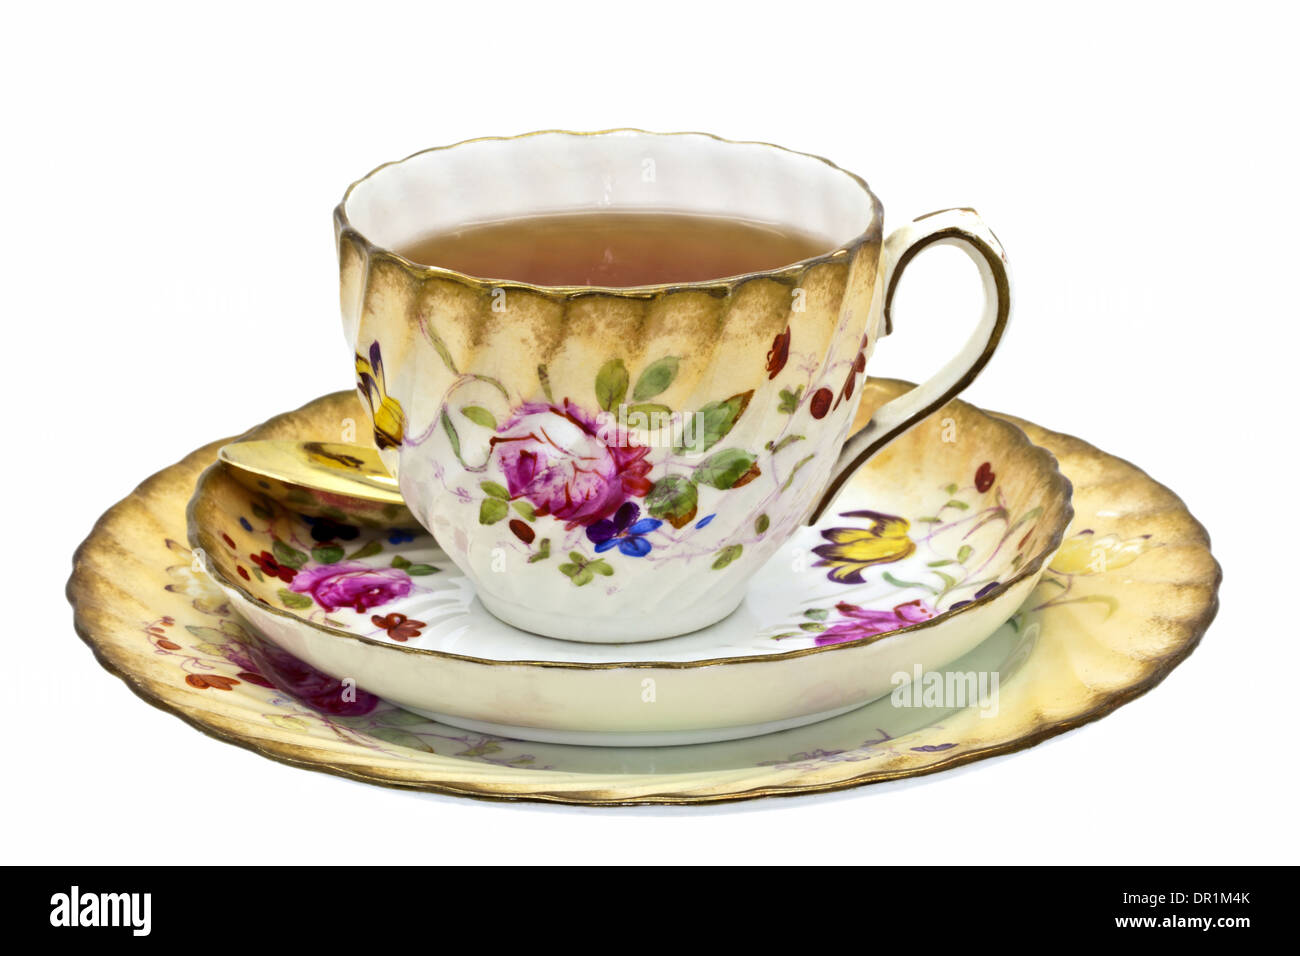 Tea in an antique china cup with saucer and dessert plate. - Stock Image